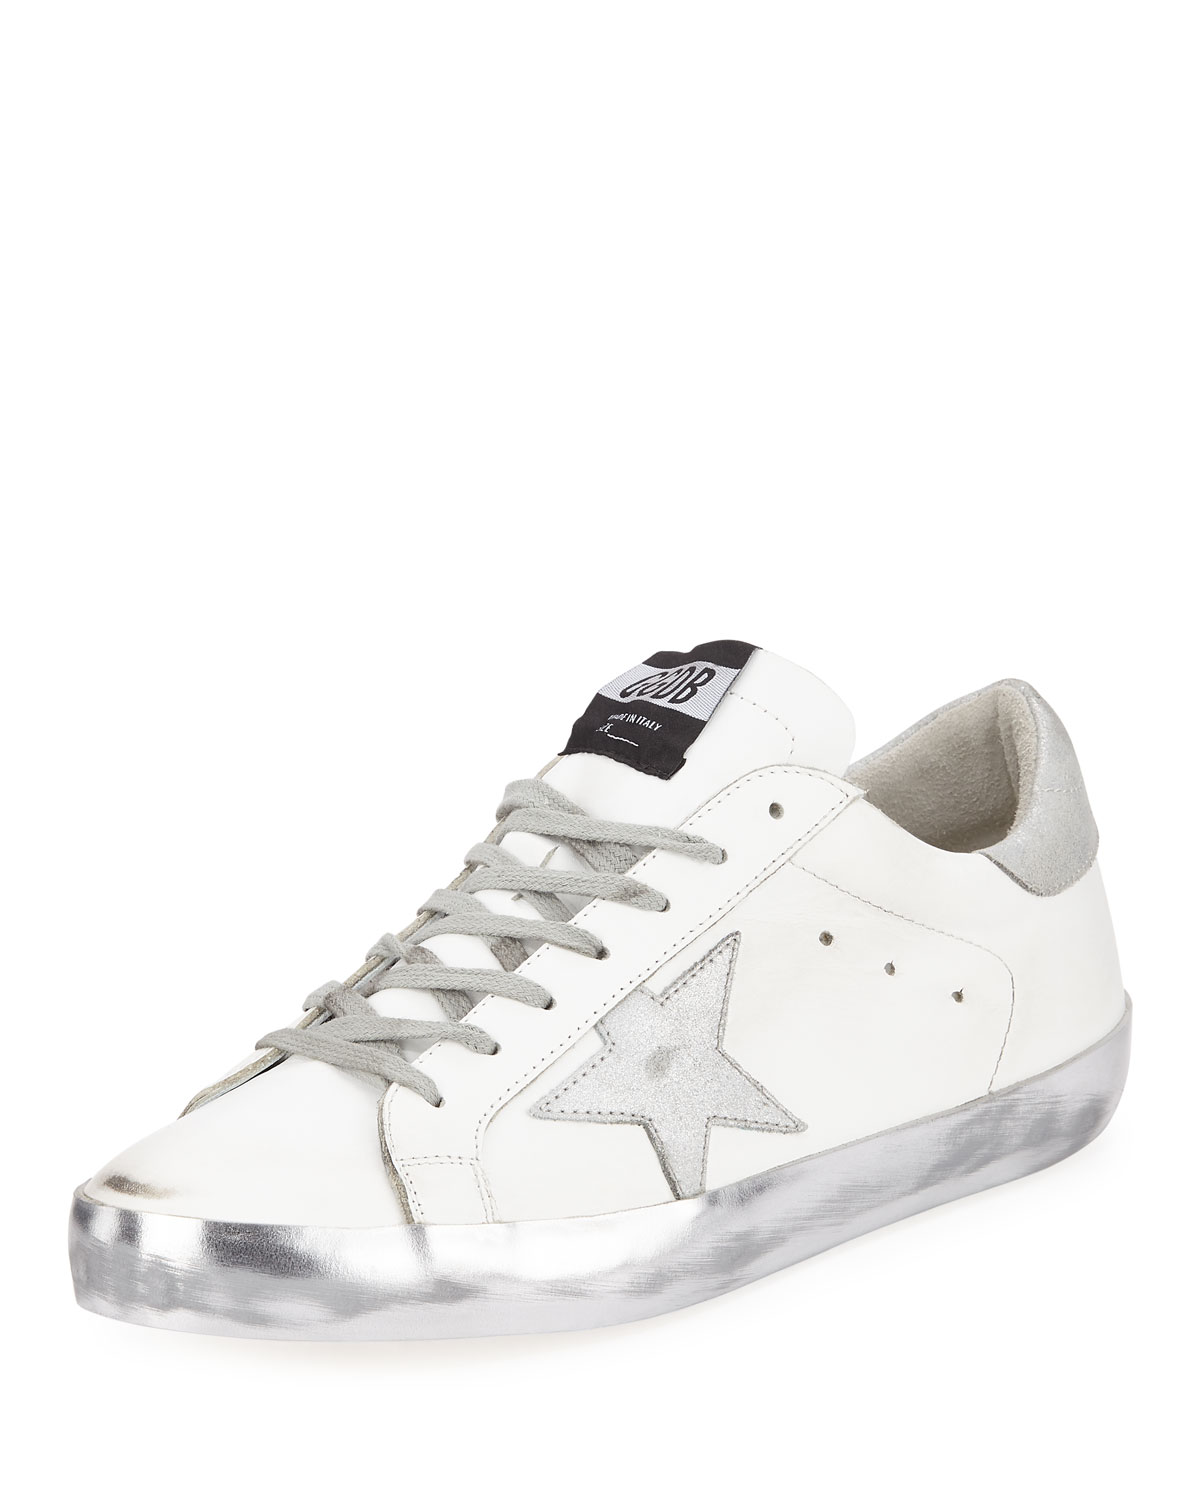 Golden Goose Men's Superstar Leather Low-Top Sneakers In White/Silver